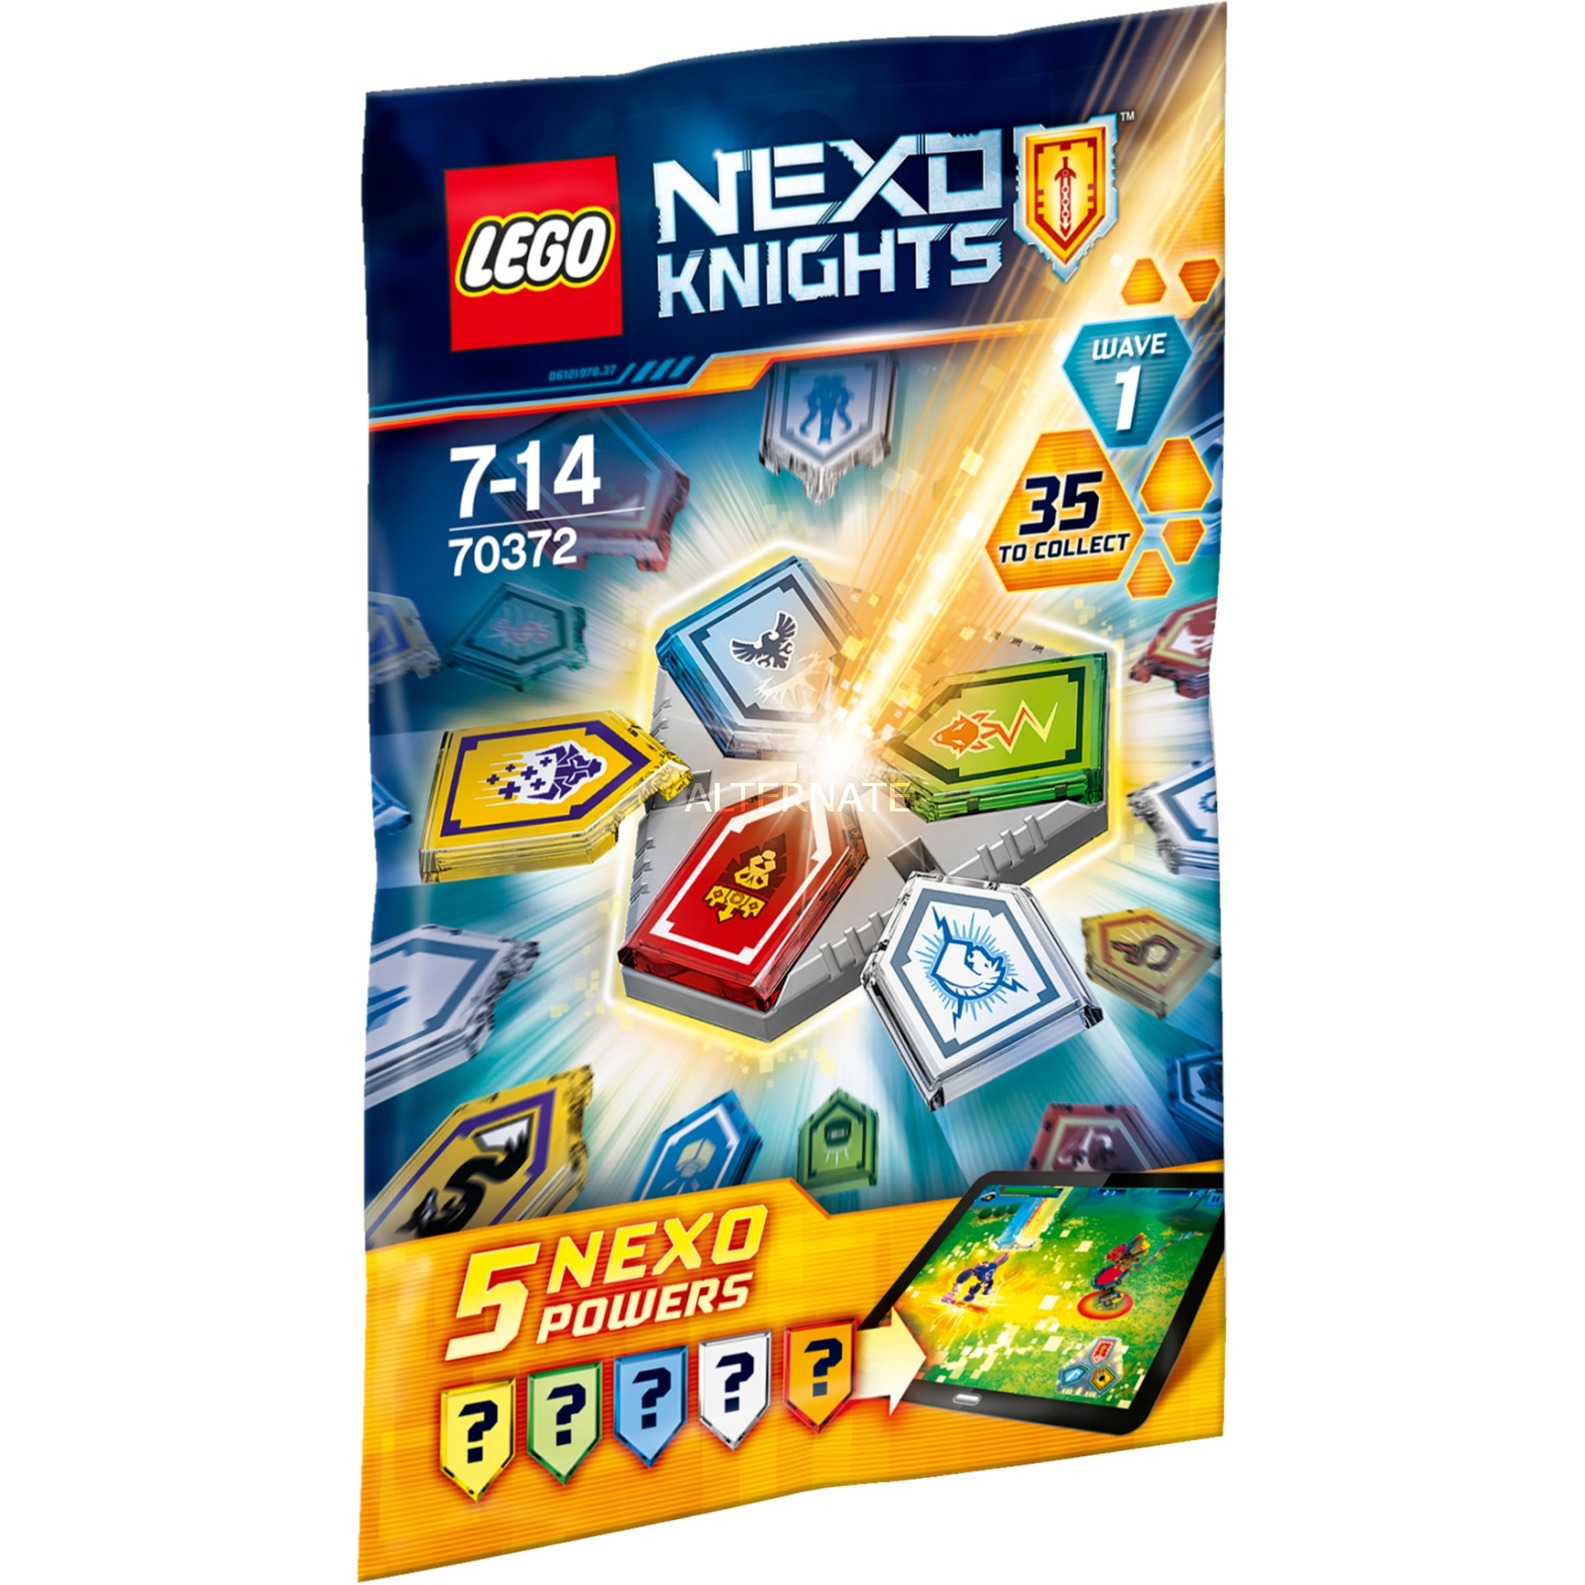 nexo-knights-combo-nexo-powers-wave-1-10pcs-toy-building-blocks-bygge-legetoj